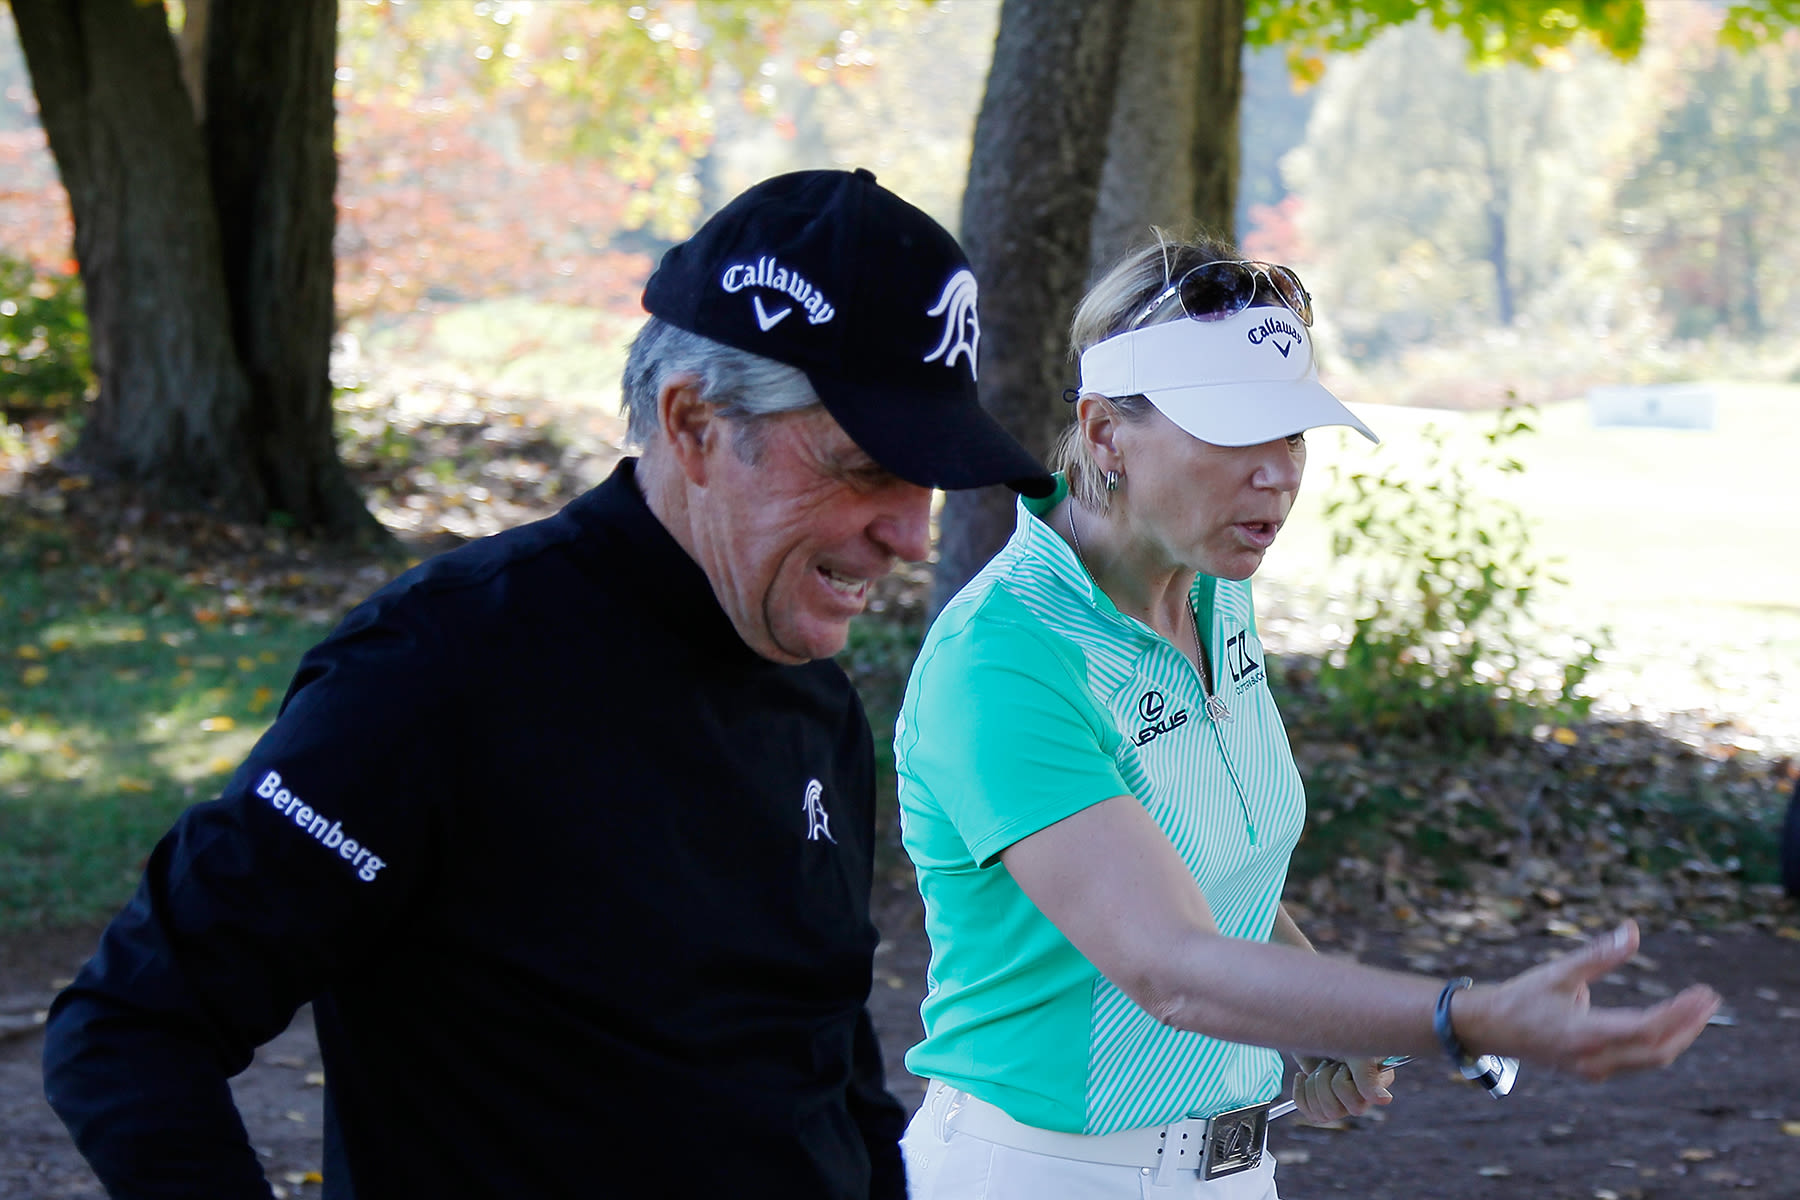 Gary Player and Annika Sorenstam during the Berenberg Gary Player Invitational Pro-Am held at GlenArbor Golf Club on October 12, 2015 in Bedford Hills, New York. (Photo by Michael Cohen/Getty Images)